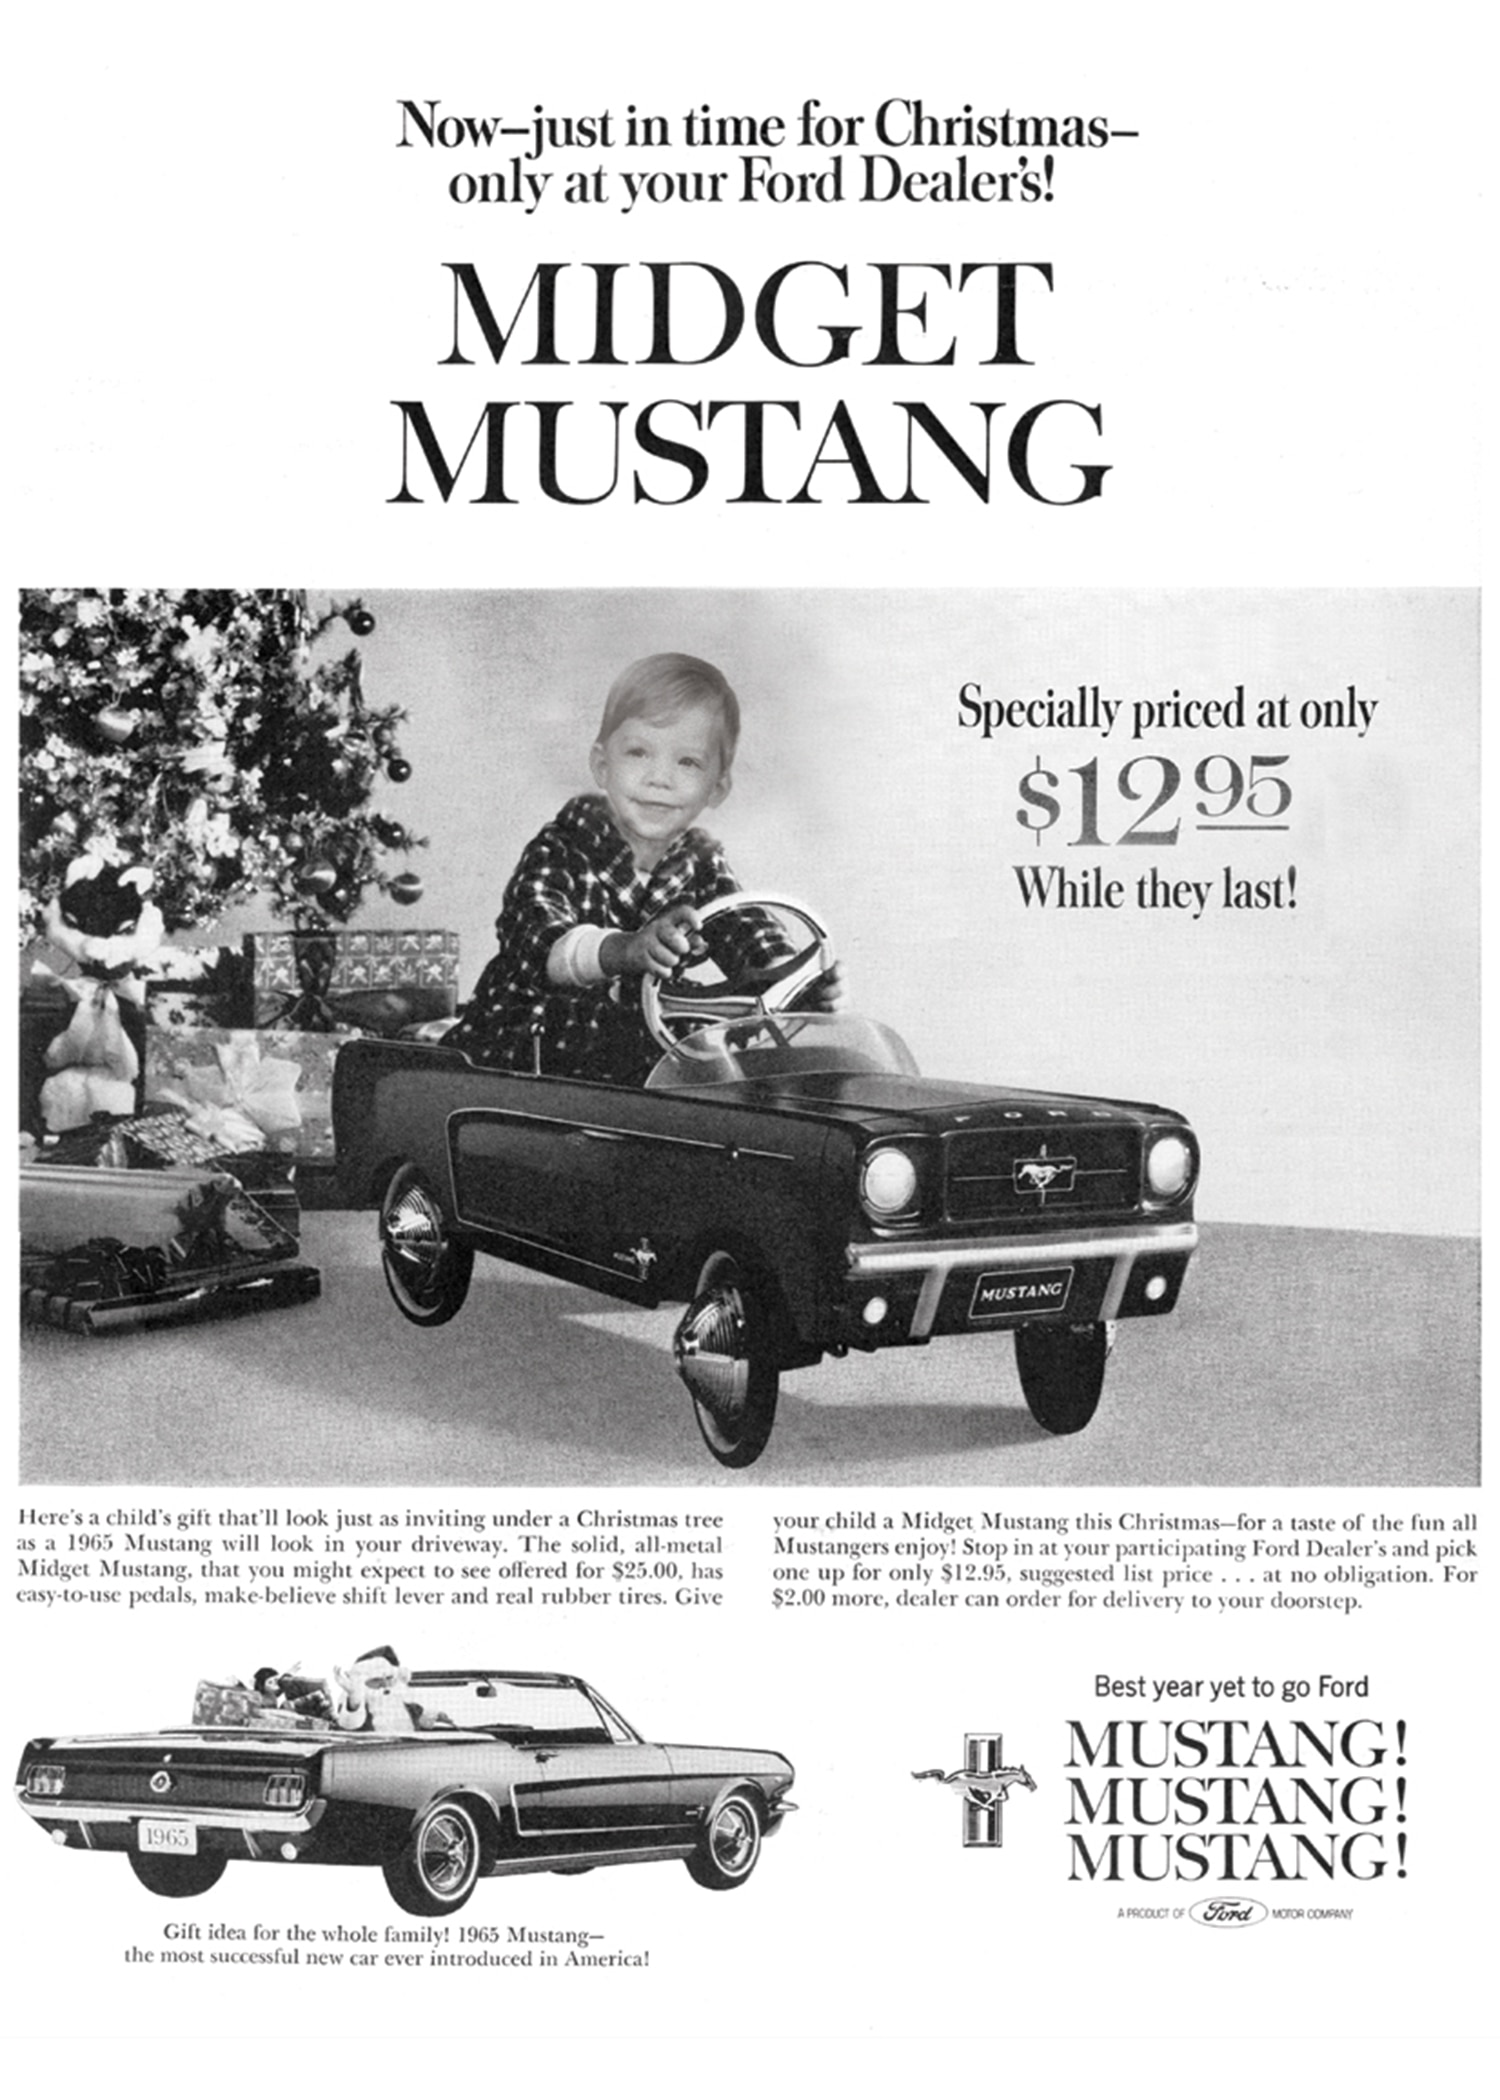 Ford Mustang Pedal Car Advertisement